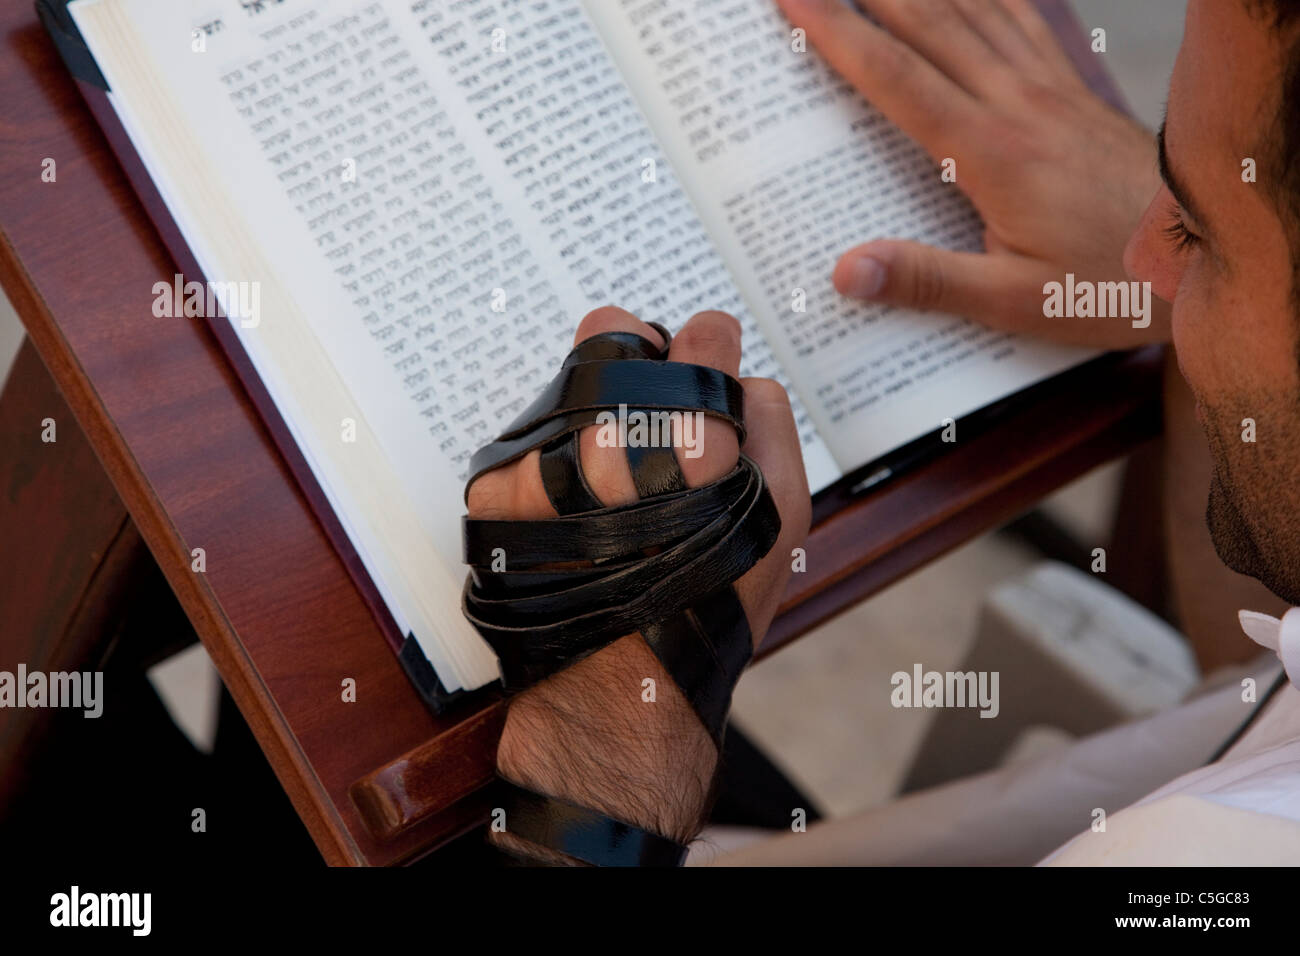 Jewish man wrapped with a Tefilin phylacteries reading the Siddur Jewish book of pray - Stock Image